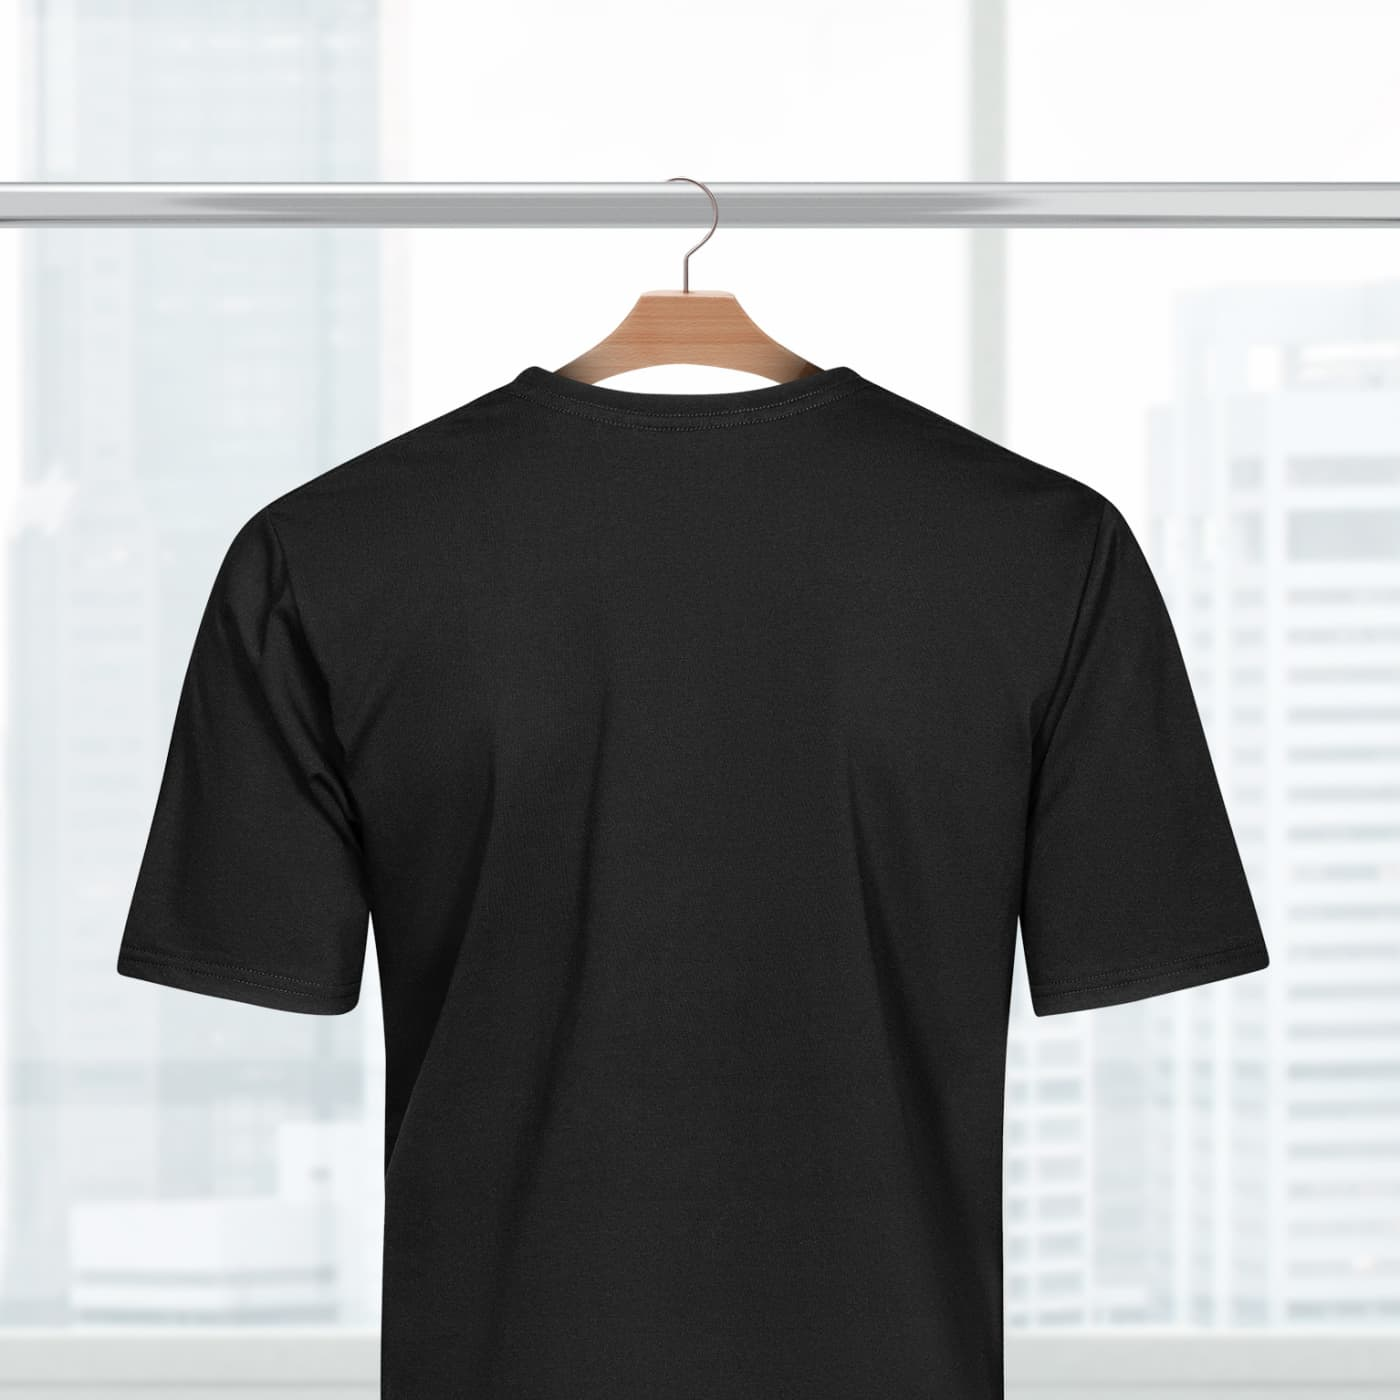 b98a81f14a840 Men's Cotton T-shirts - Colours